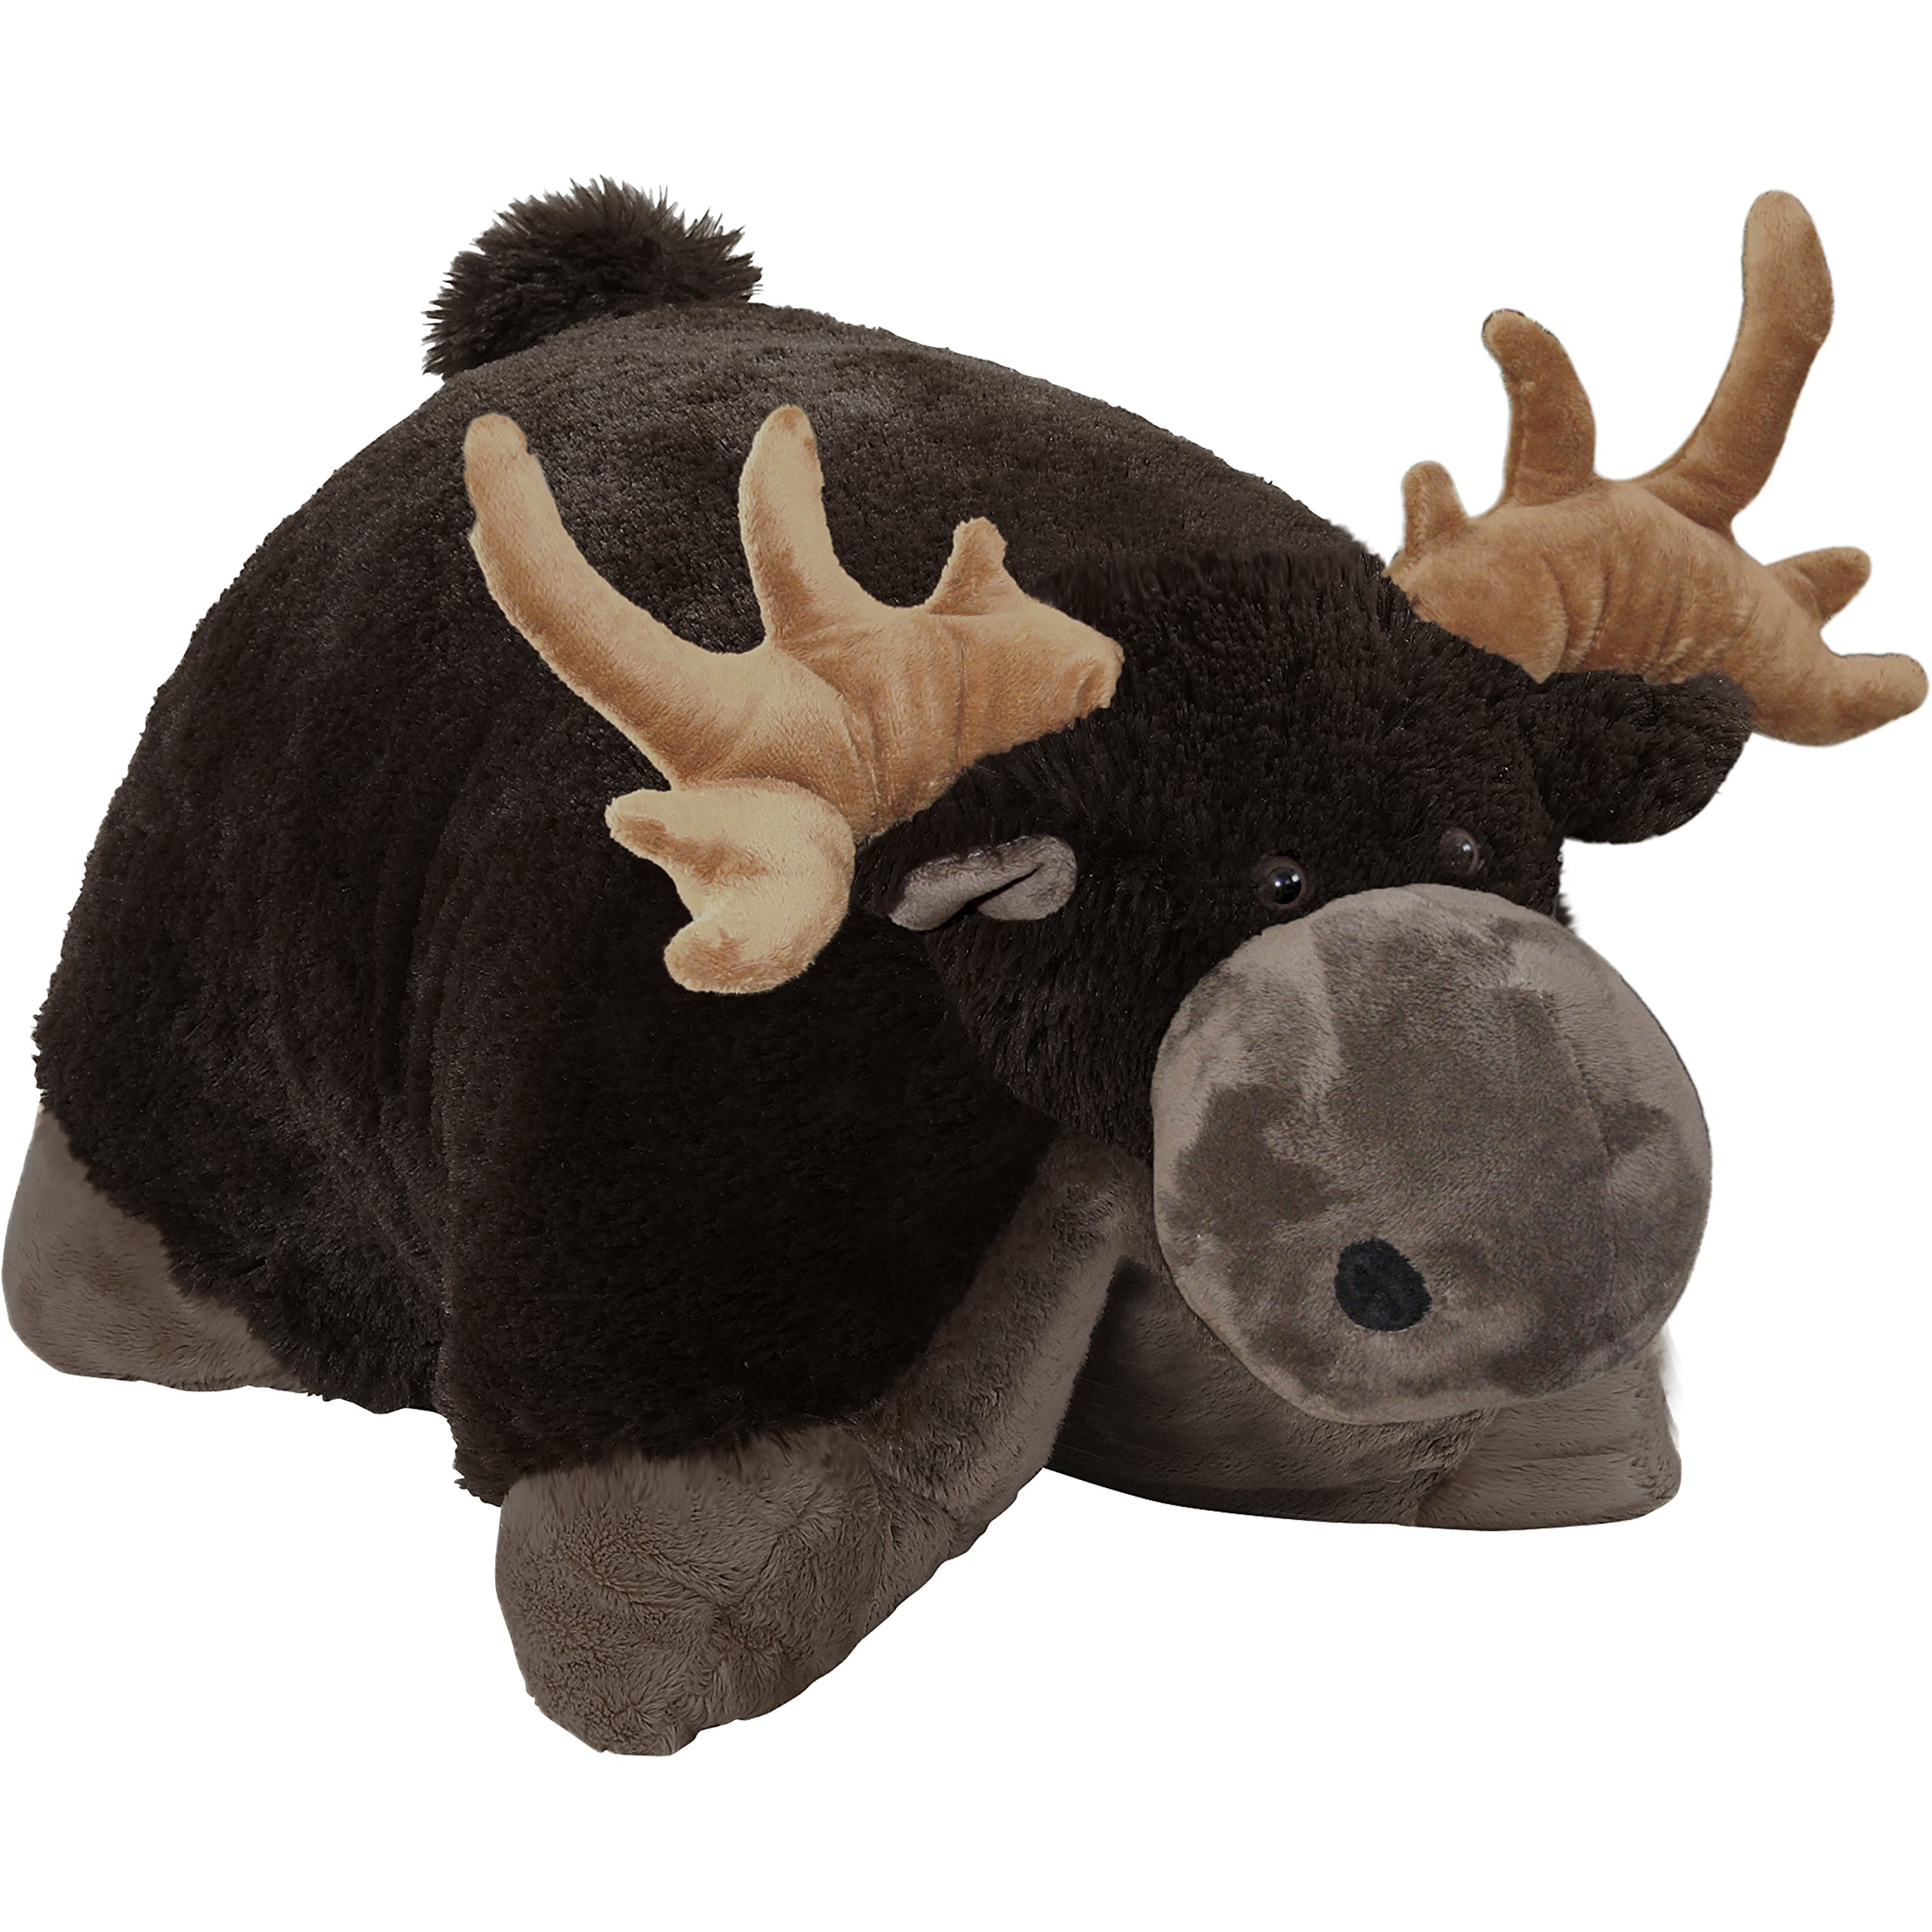 Pillow Pets Wild Moose Stuffed Animal Plush Toy 18 by Pillow Pets